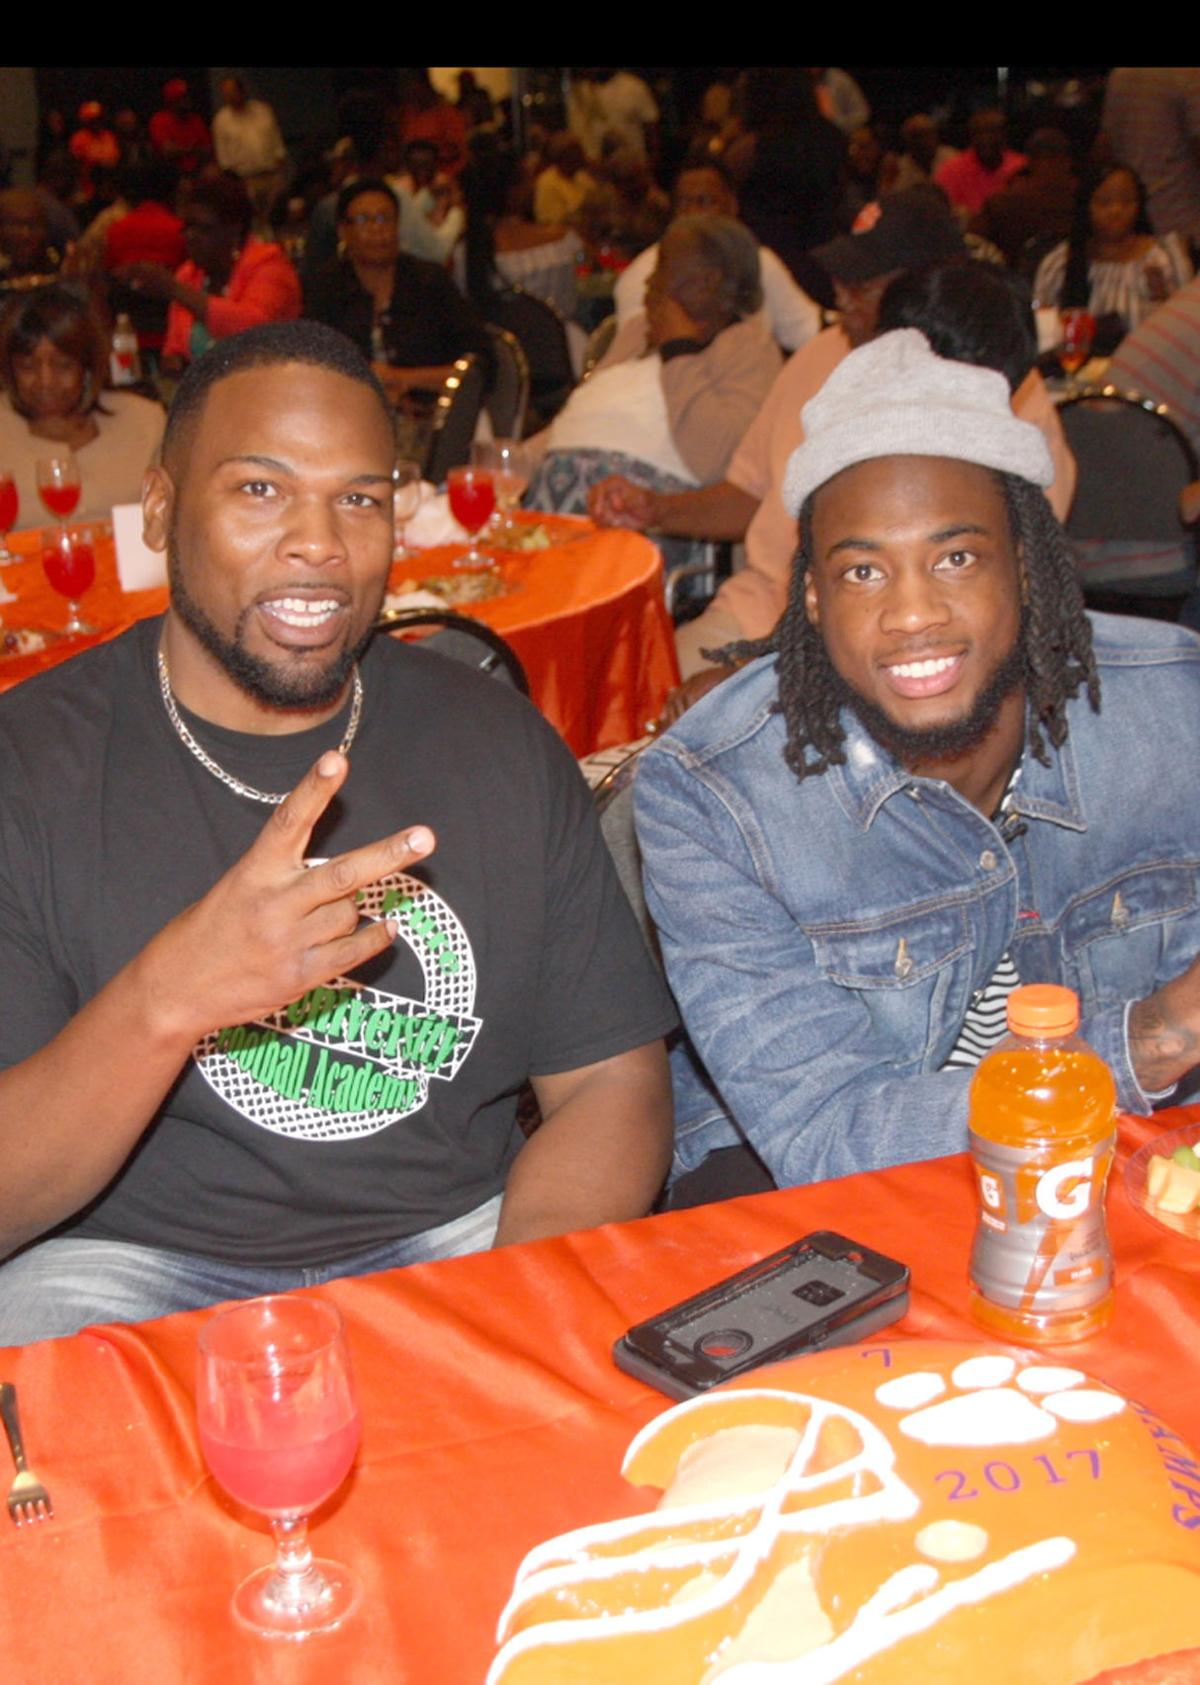 Chris Carter and Mike Williams